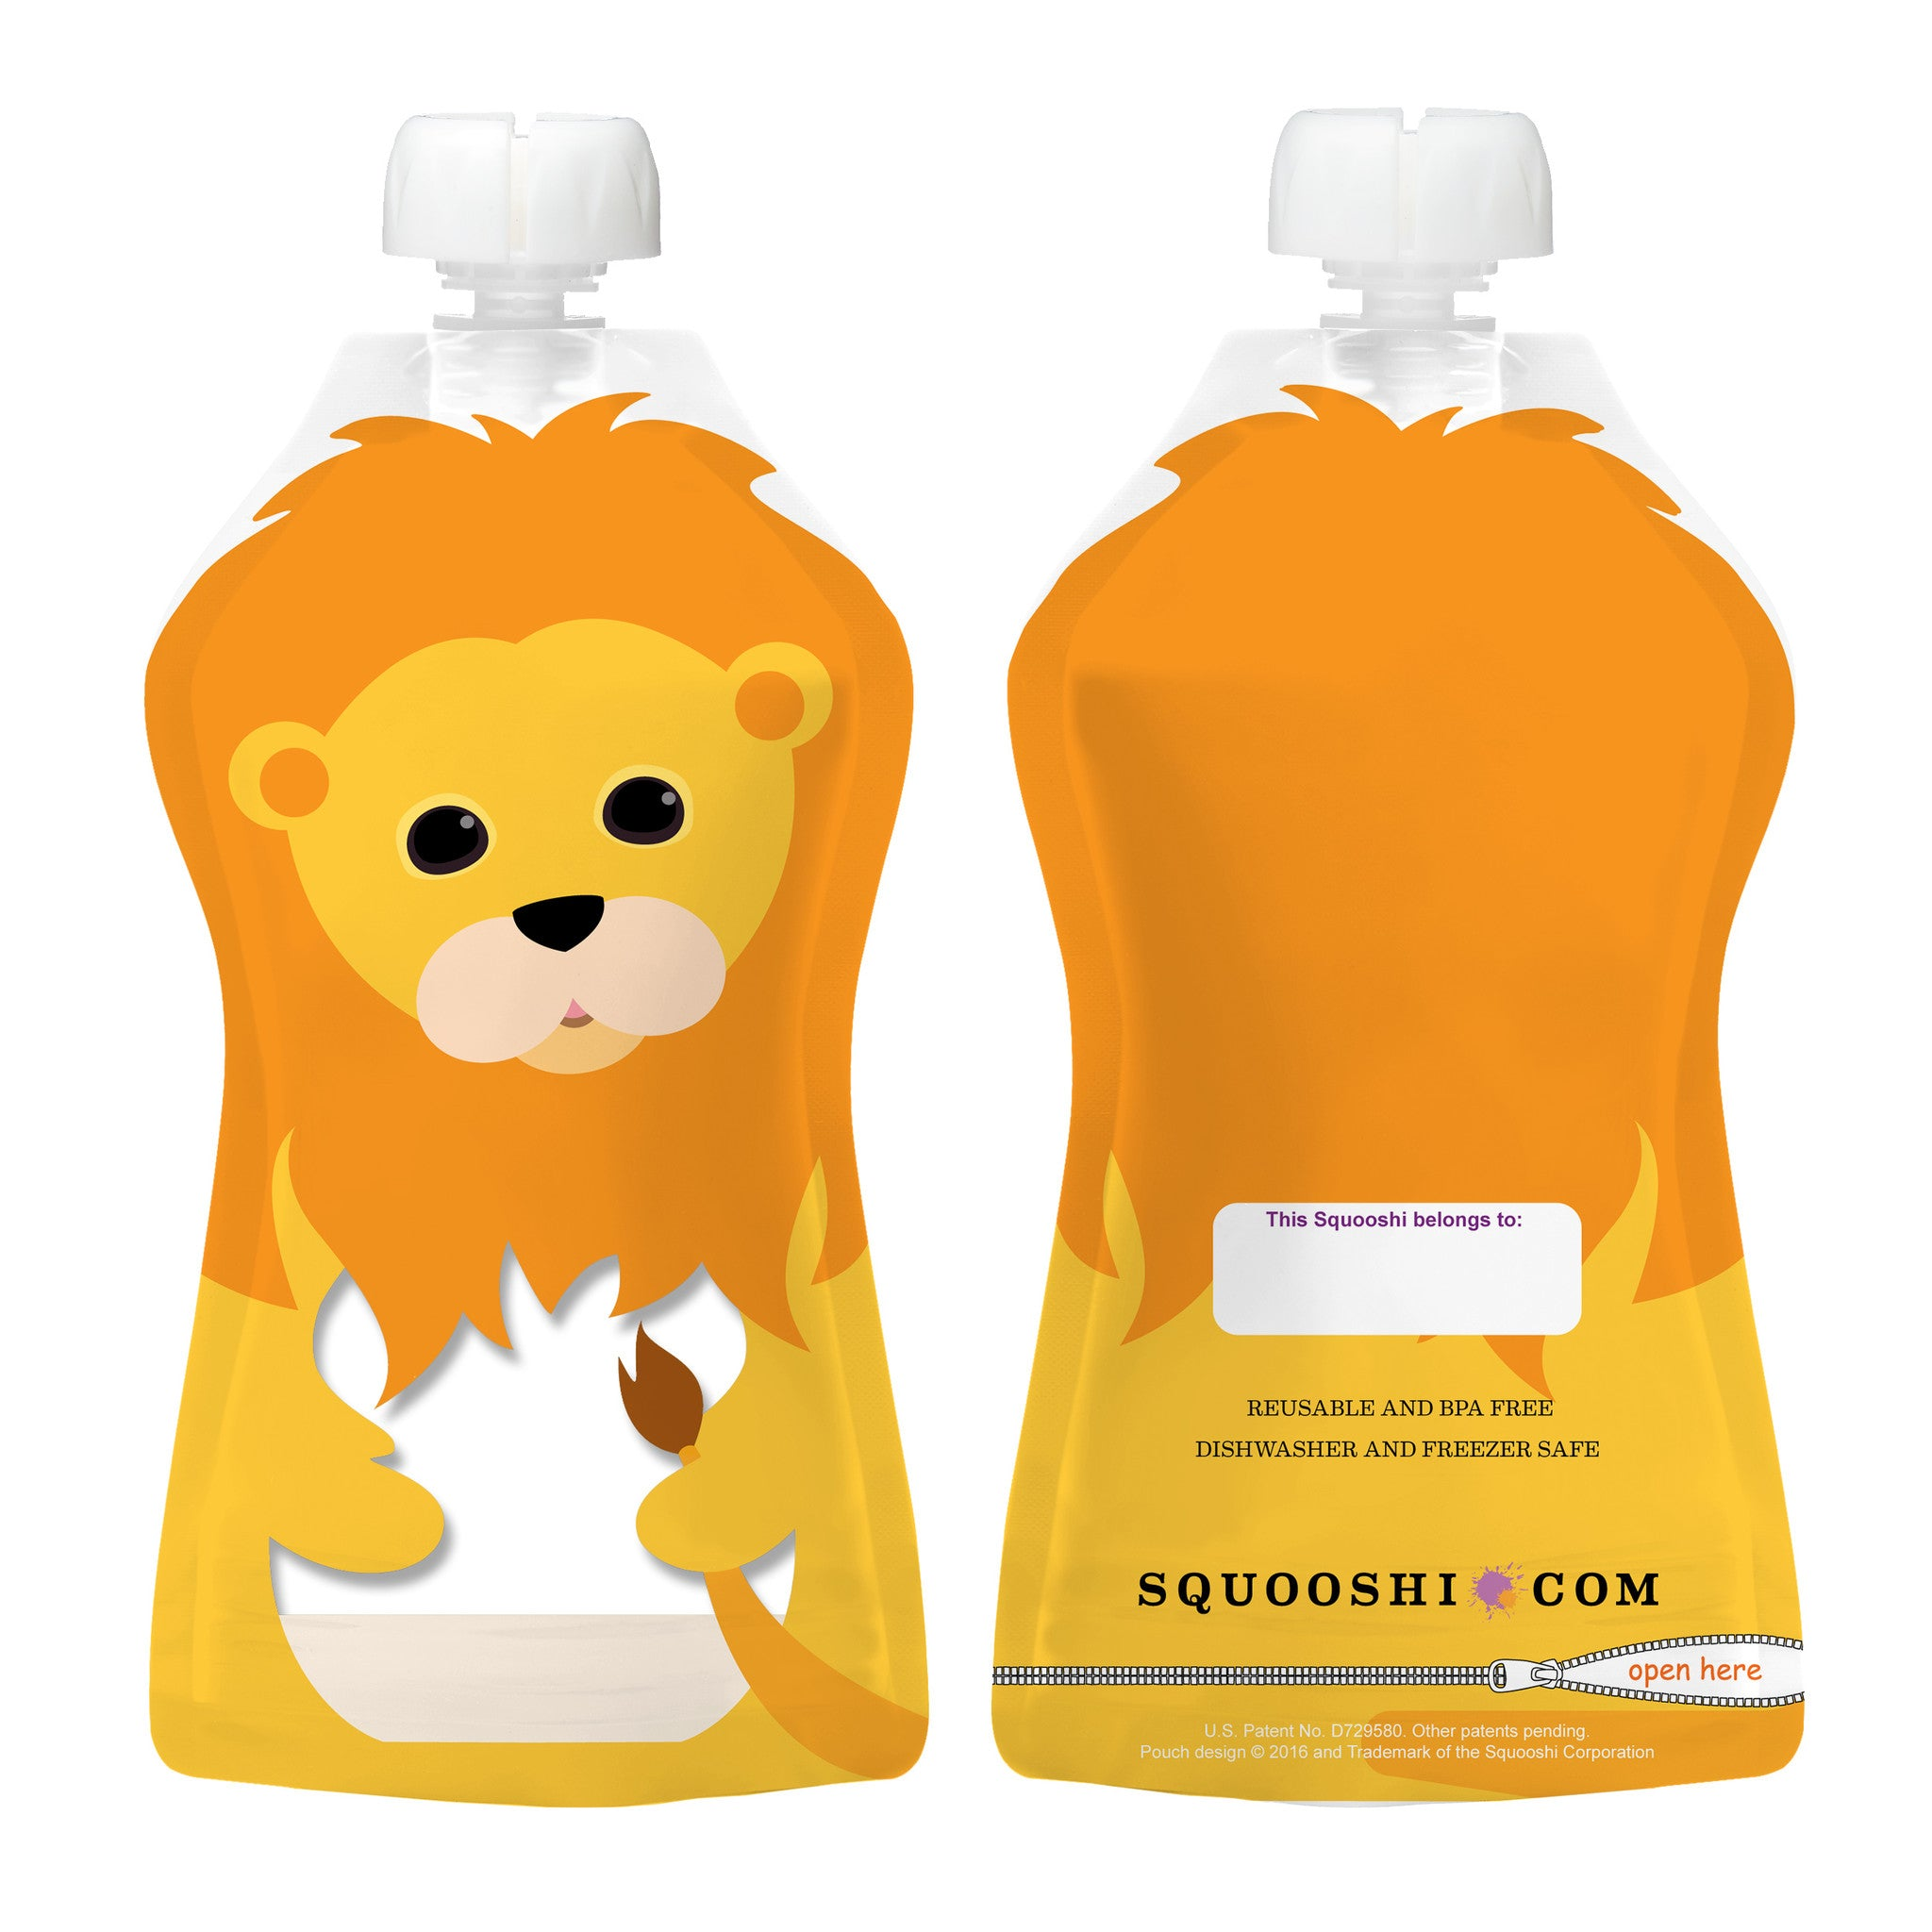 1af18f10c Try-a-Squooshi  NEW Design - LION (Reusable Food Pouch  Larger ...